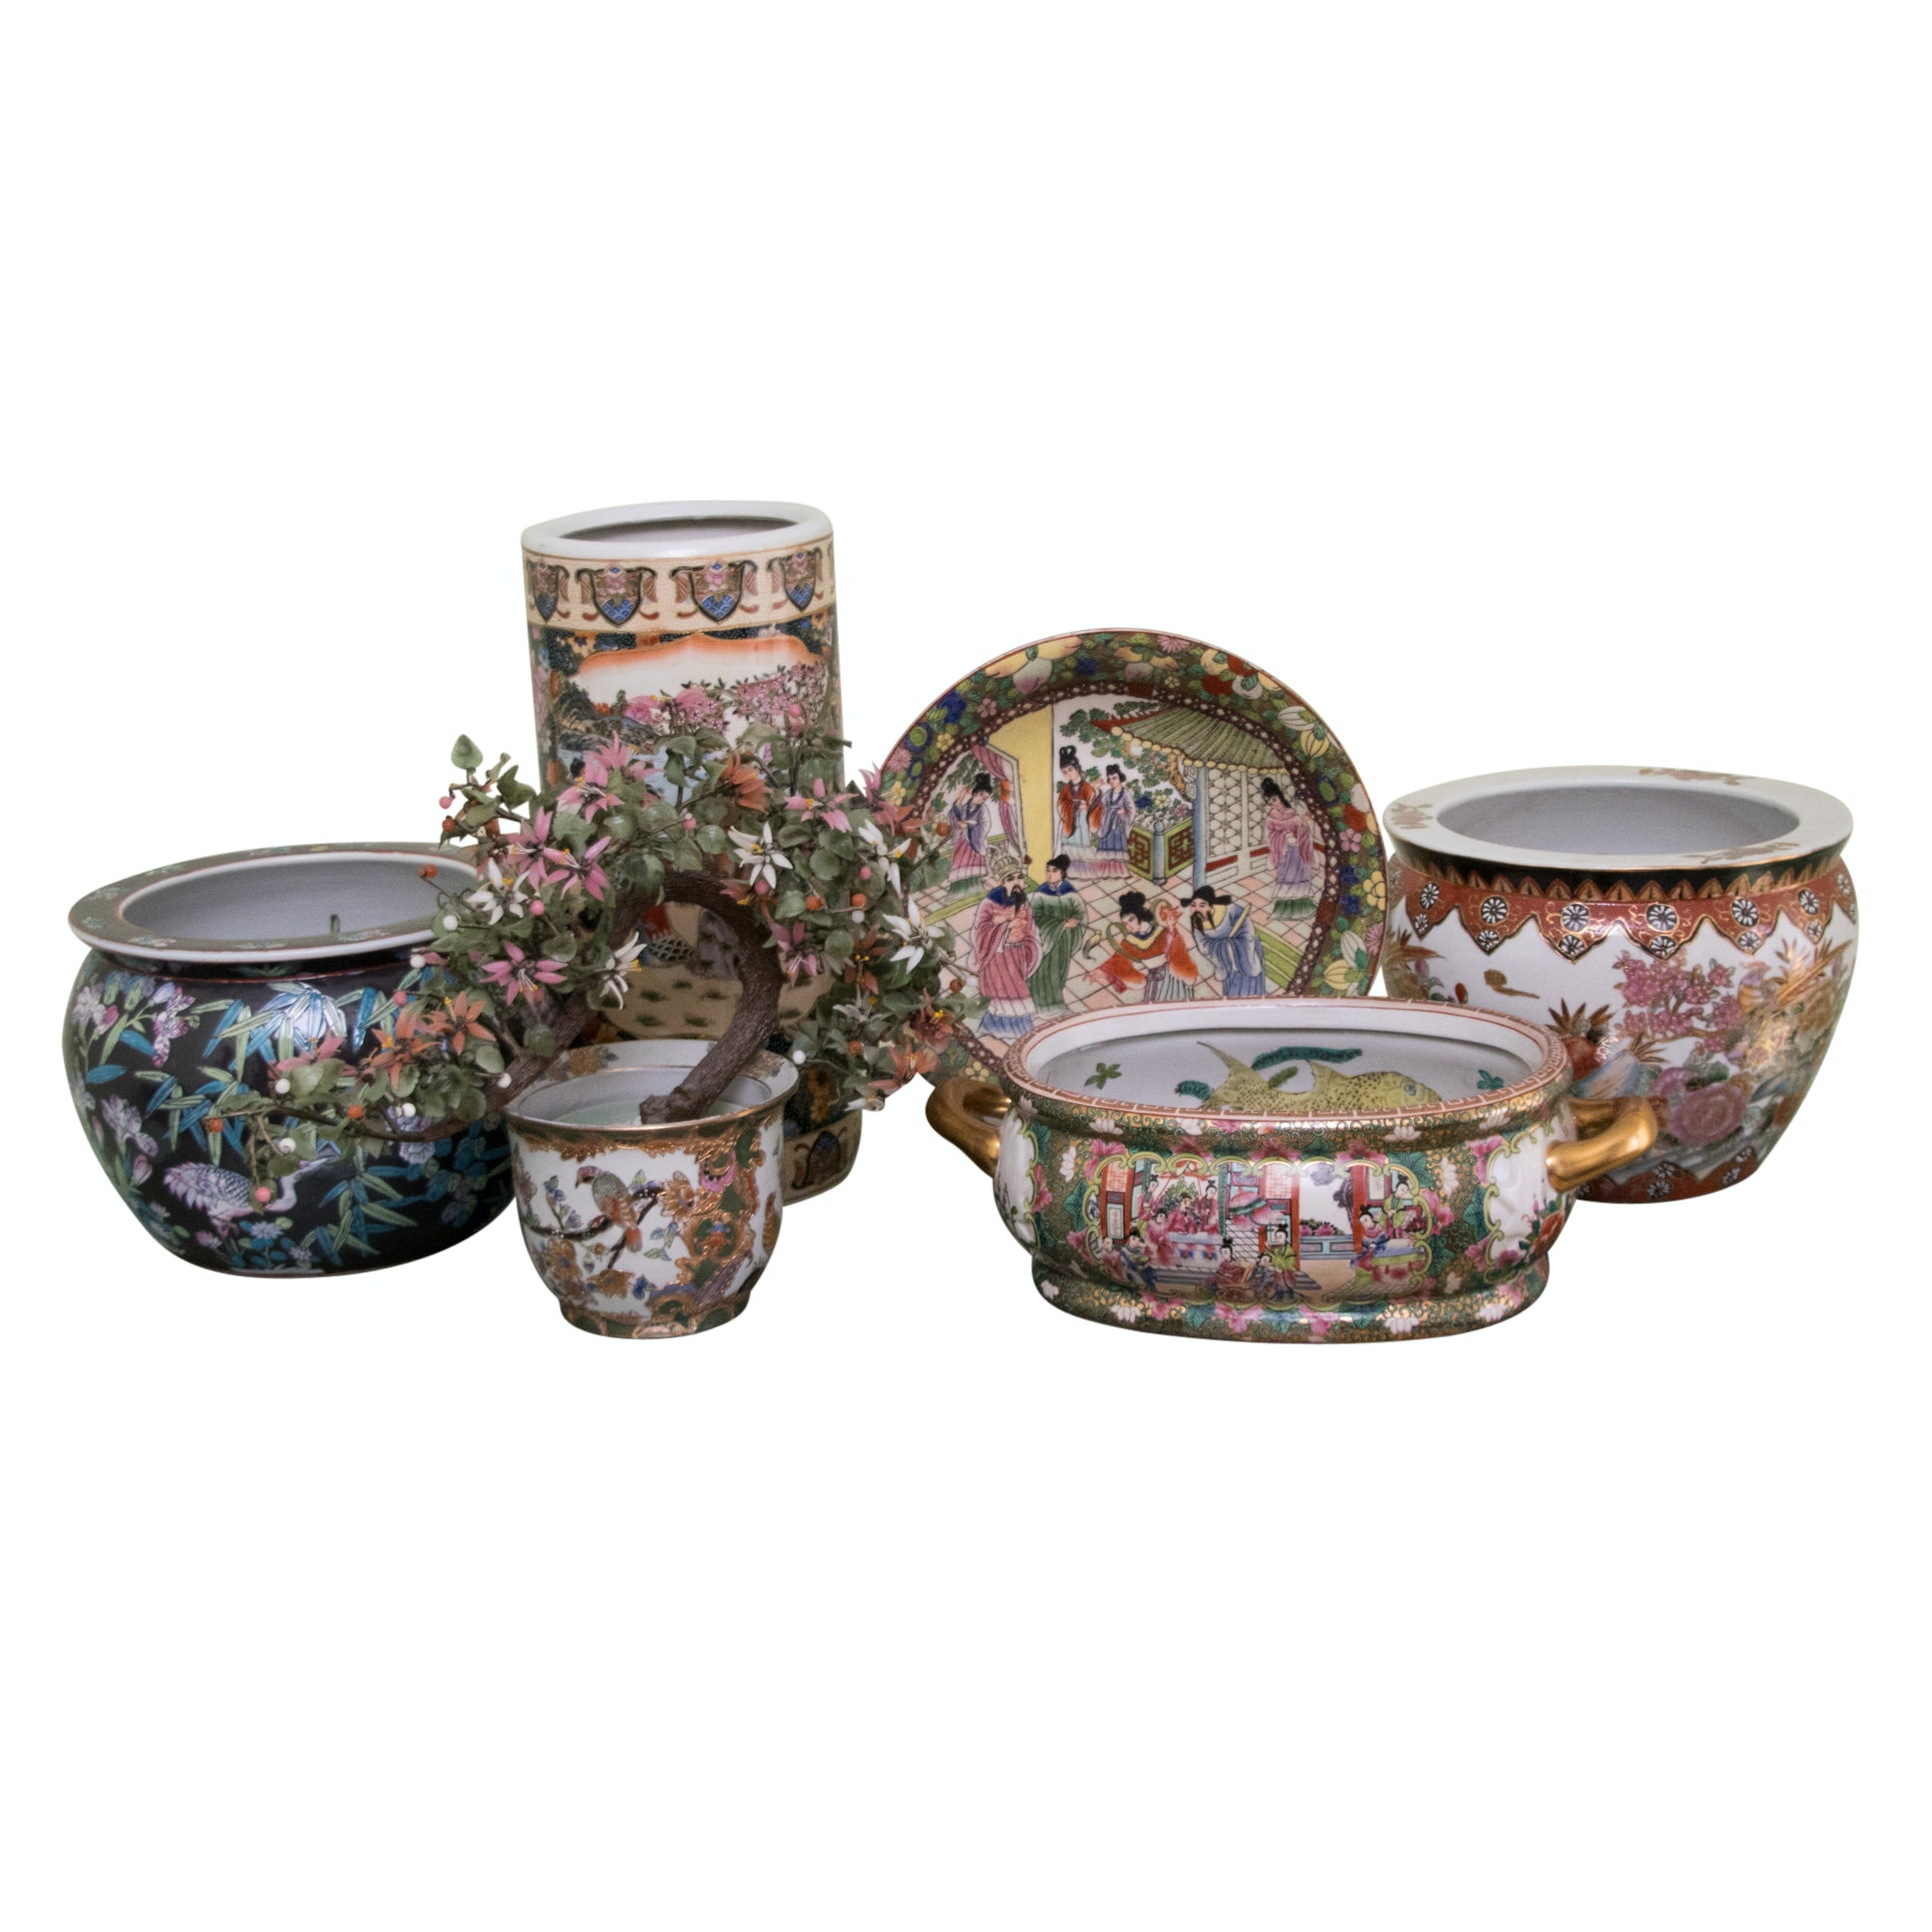 Collection of Chinese Porcelain Vases and Decor